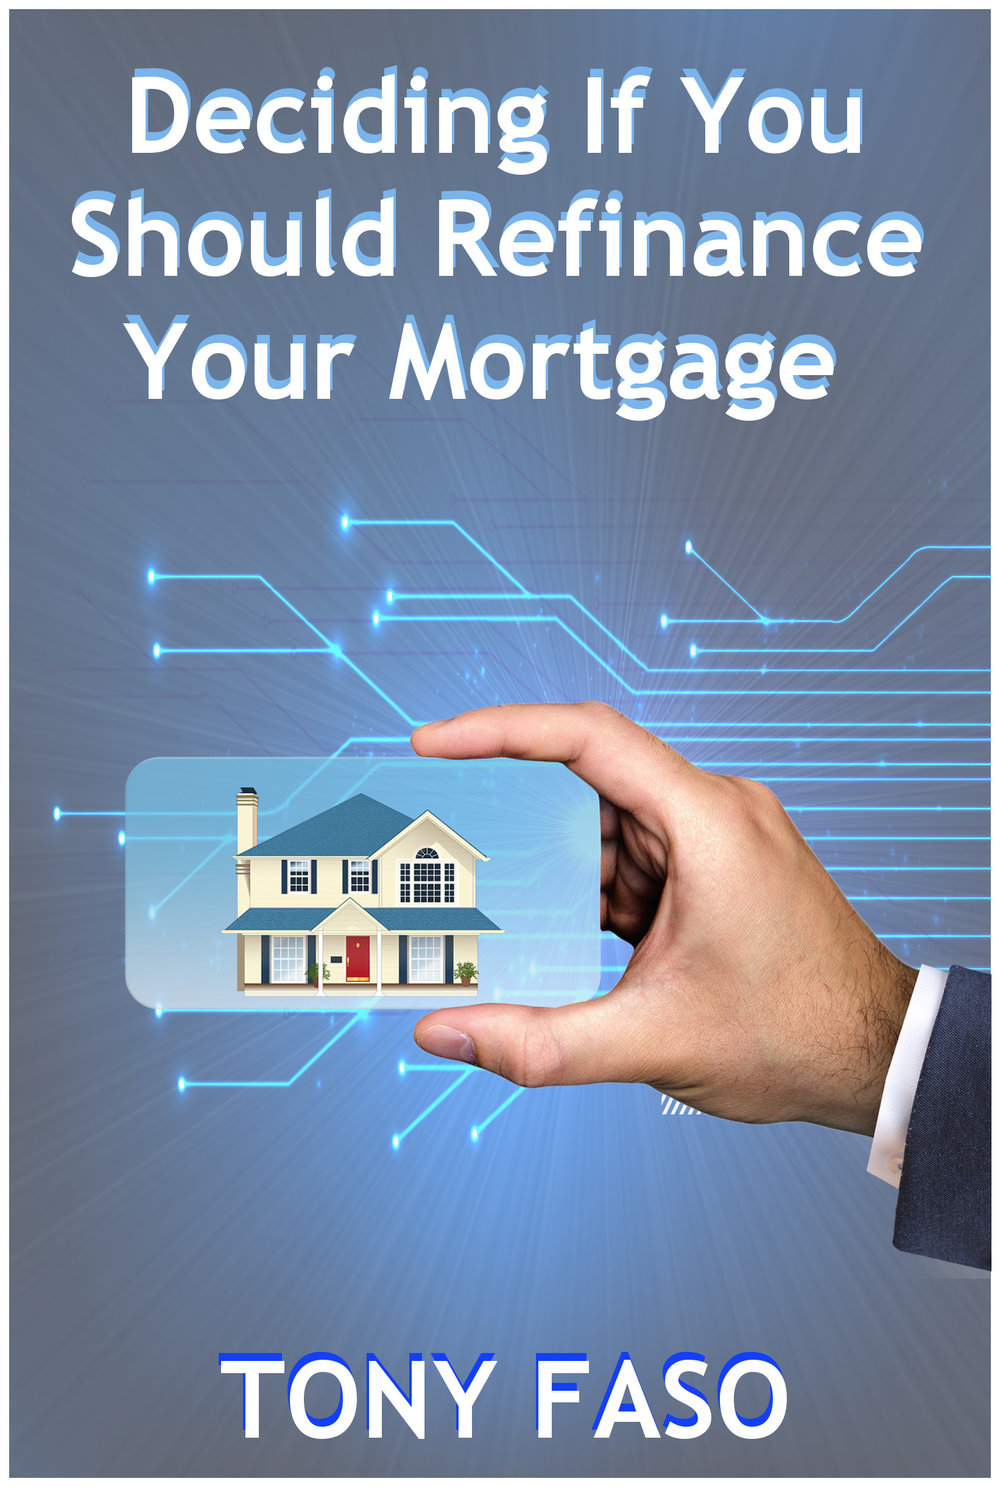 Deciding If You Should Refinance Your Mortgage.jpg